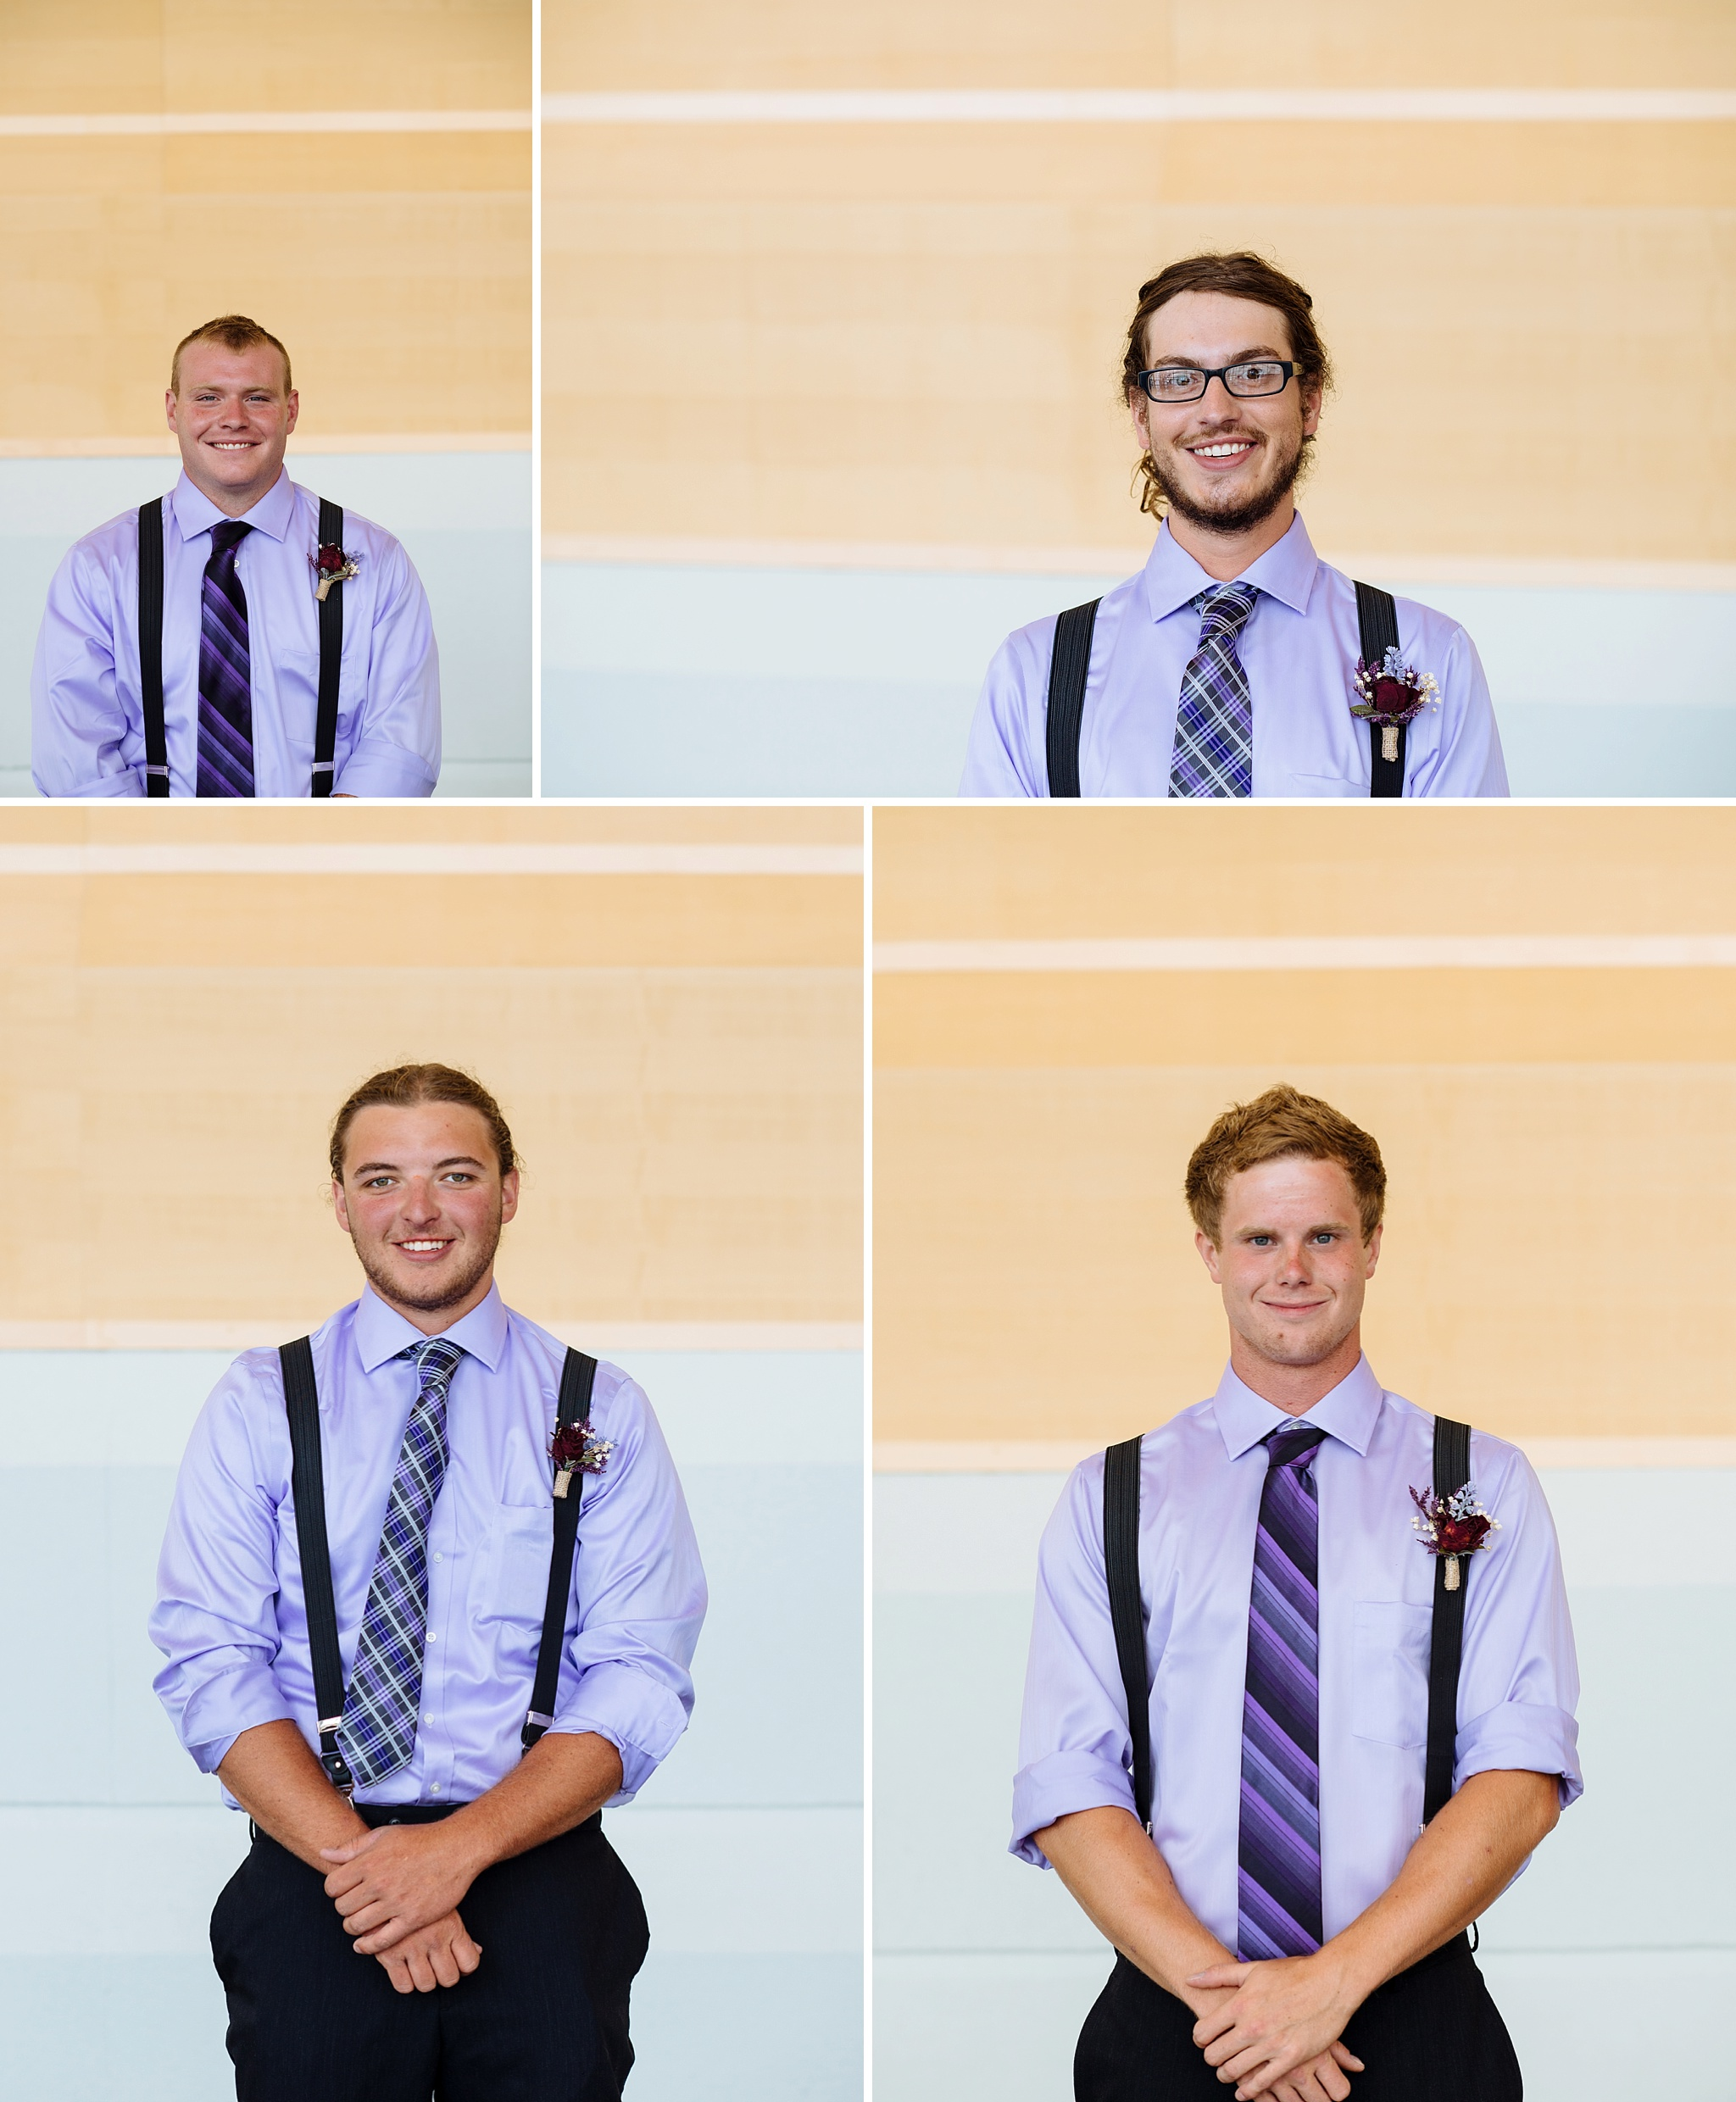 Photos of all of the groomsmen individually.